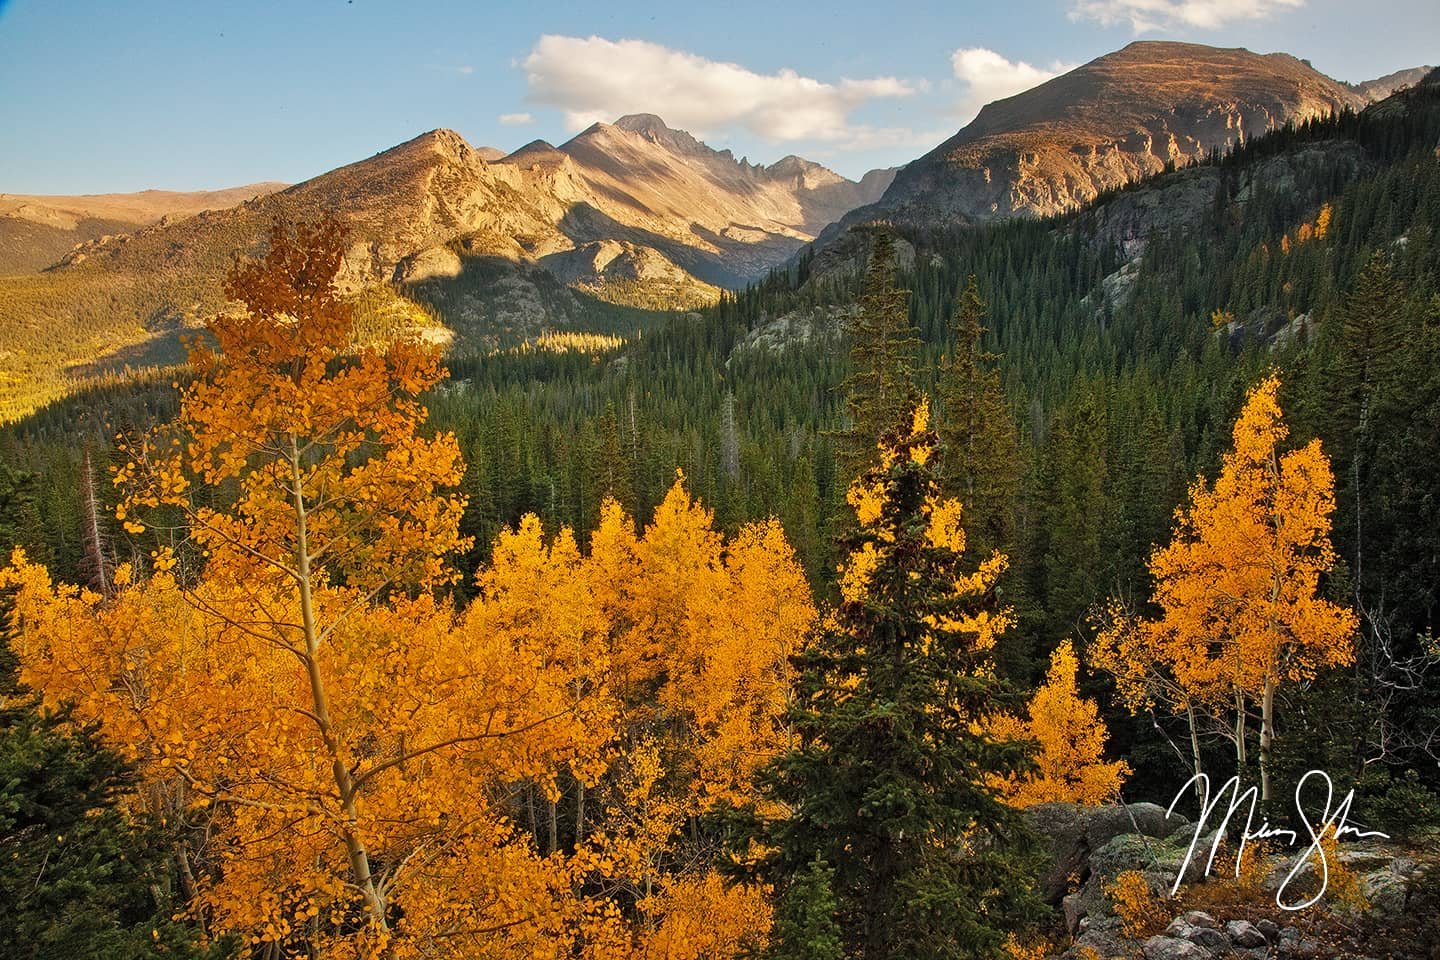 Autumn View of Longs Peak